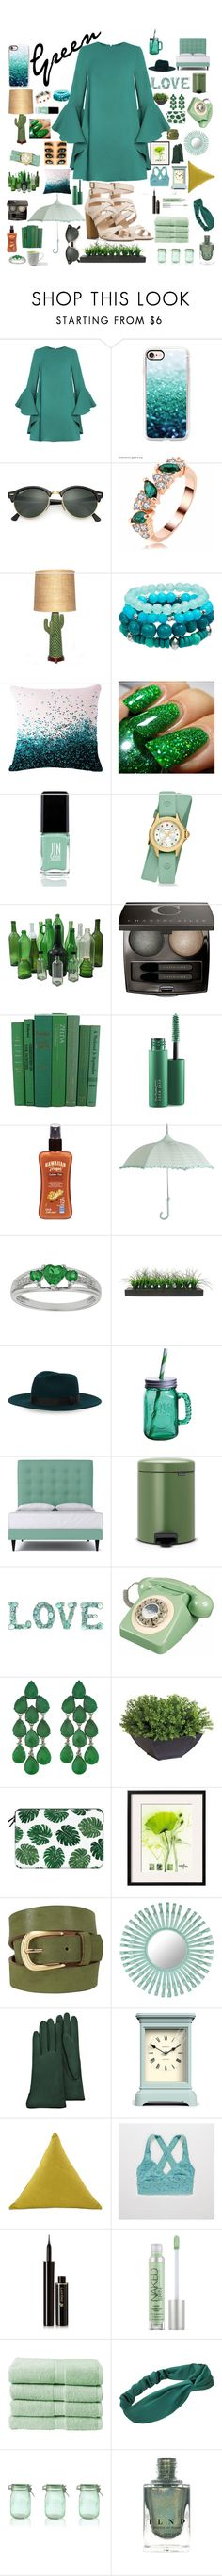 """""""Green stuff✅"""" by haleyshimmer ❤ liked on Polyvore featuring Casetify, Ray-Ban, JINsoon, Michele, Chantecaille, MAC Cosmetics, Hawaiian Tropic, Vintage, Fitz & Floyd and Brabantia"""